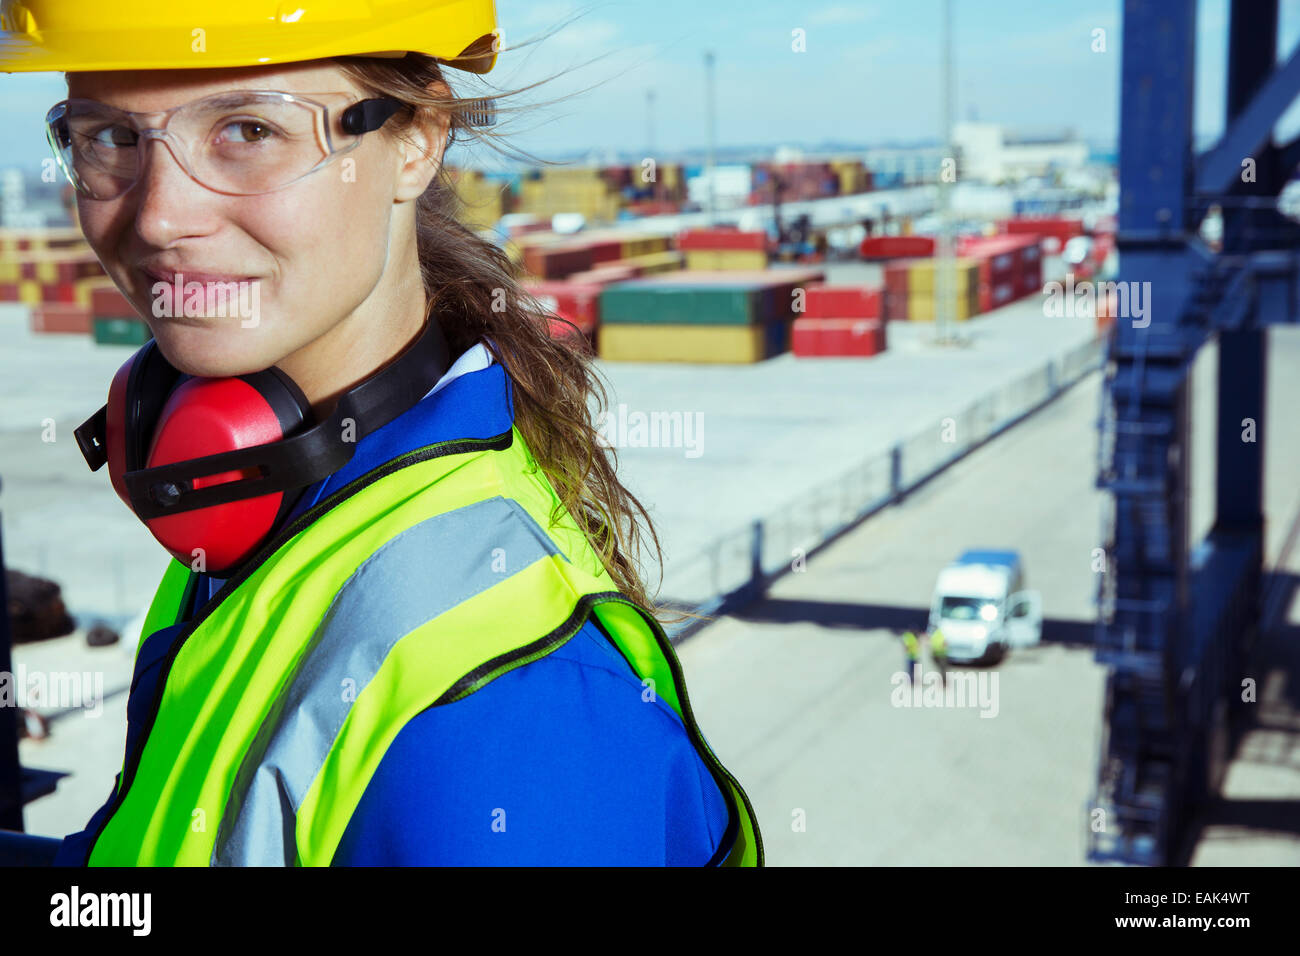 Worker smiling near cargo containers - Stock Image